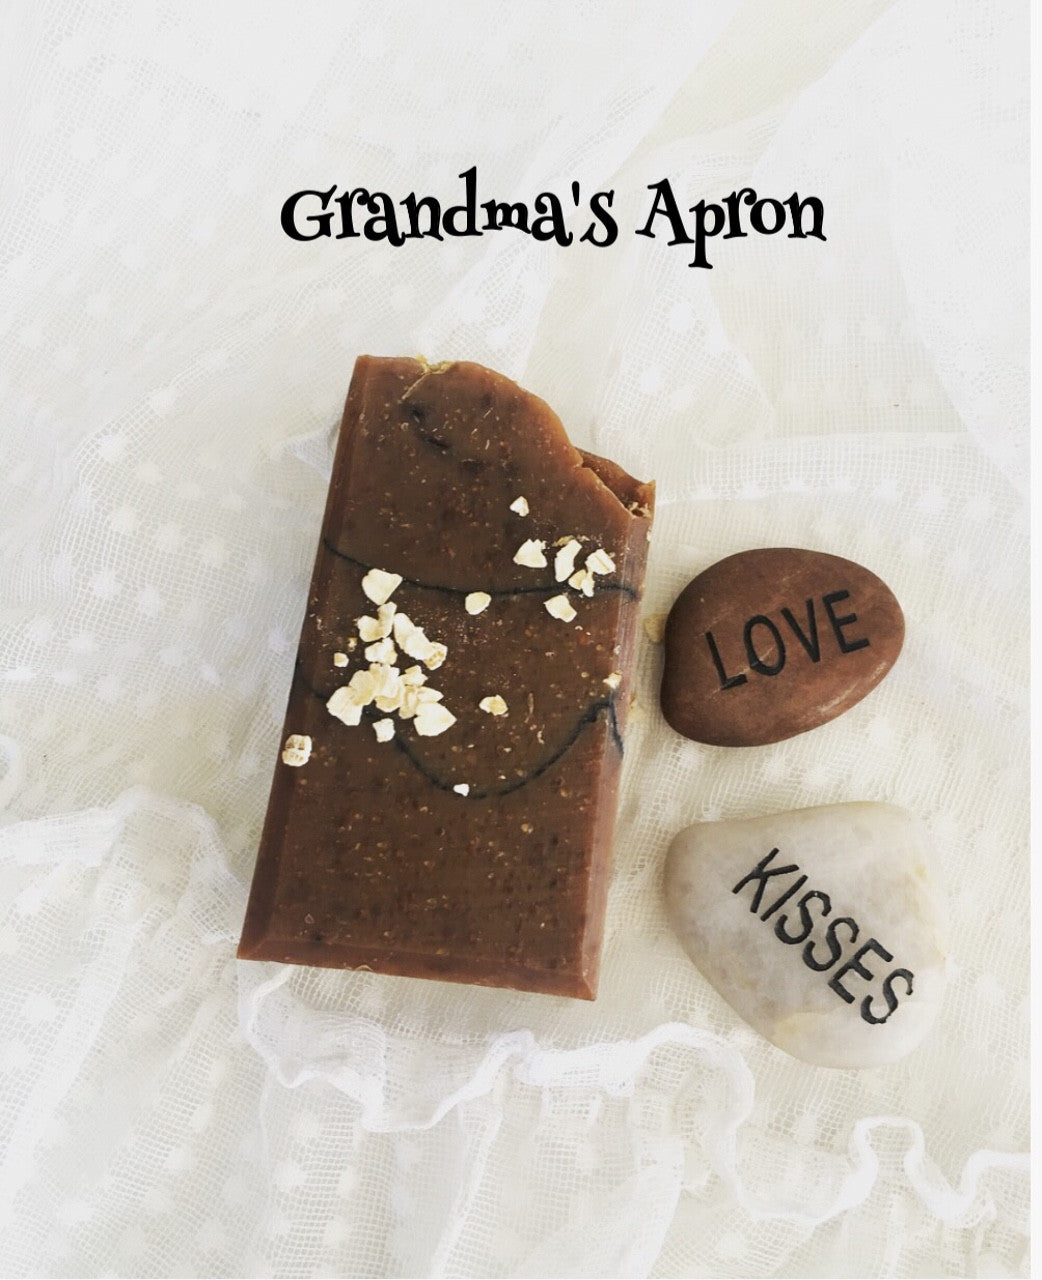 Grandma's Apron Soap Bar - Little Tree Hugger Soap